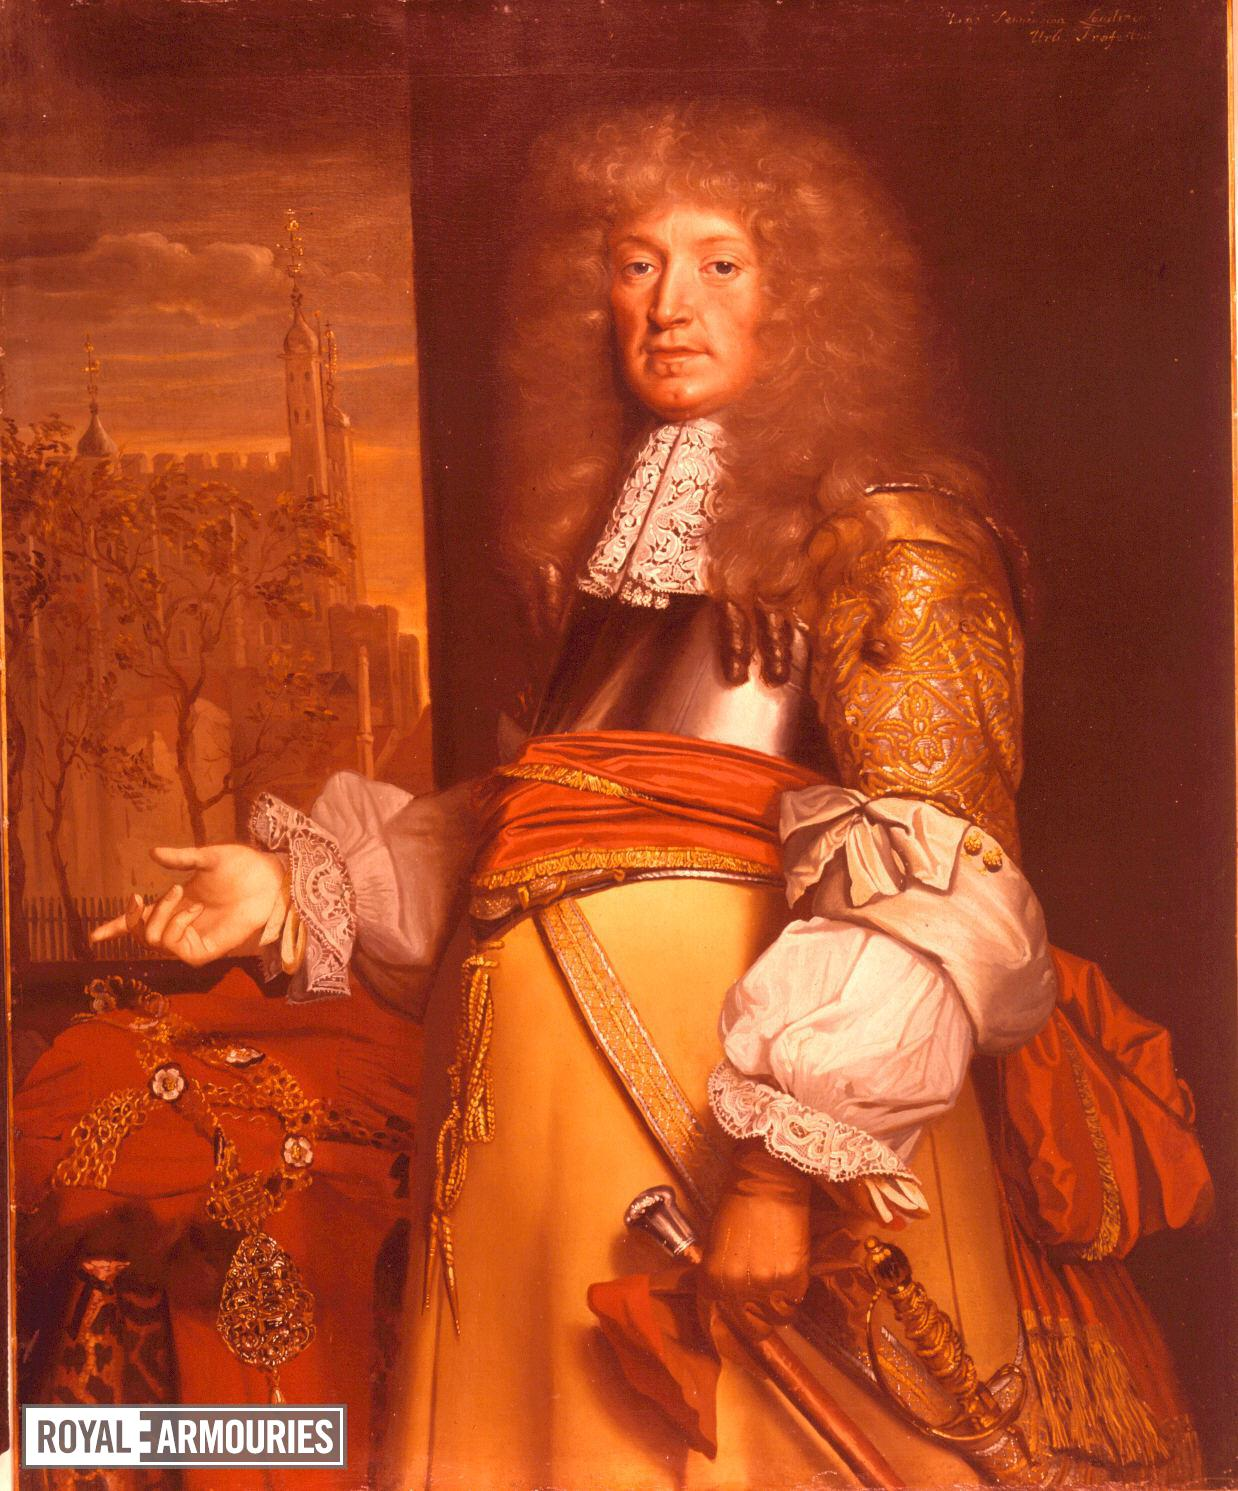 Painting Portrait of Sir John Robinson, by John Michael Wright, about 1669 - 1675.